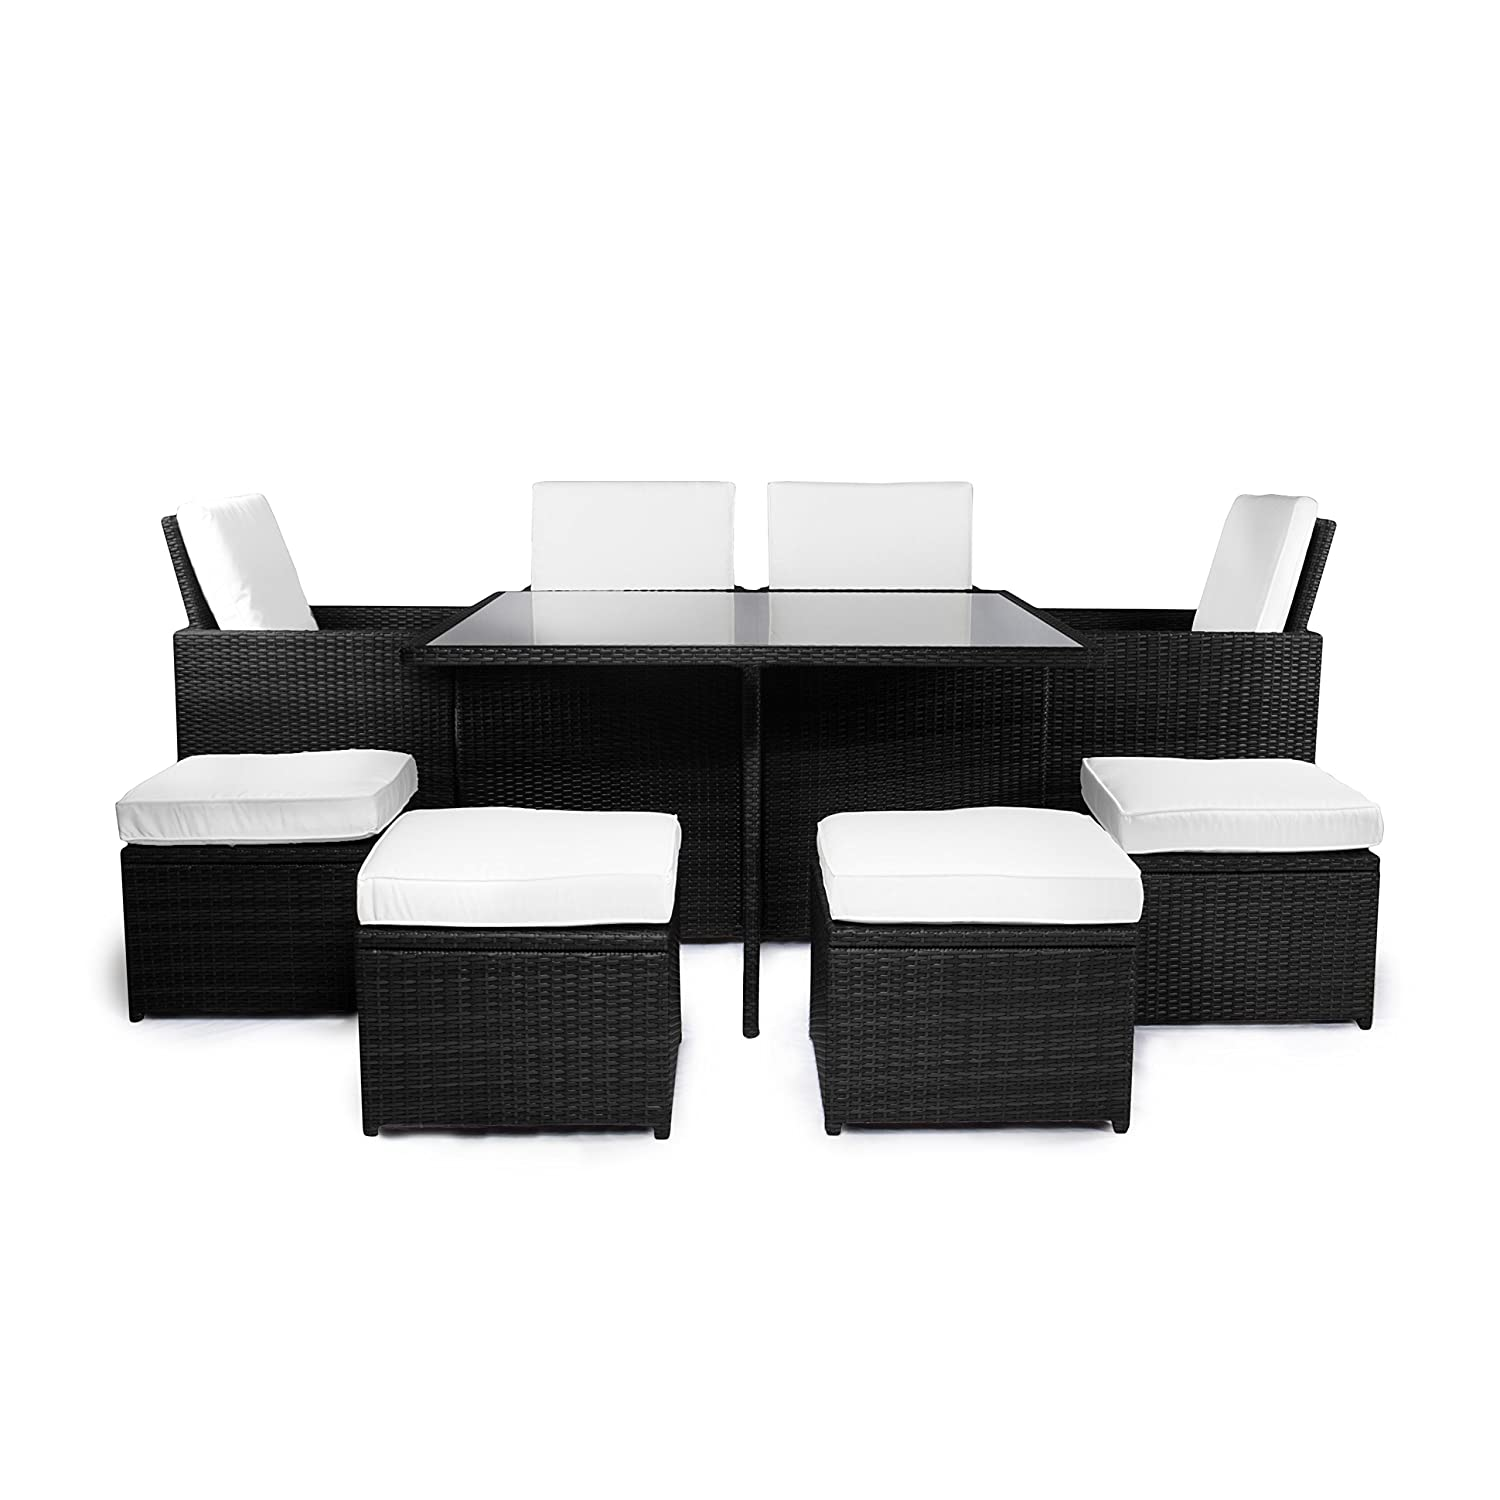 vanage gartenm bel set sydney rattan optik. Black Bedroom Furniture Sets. Home Design Ideas